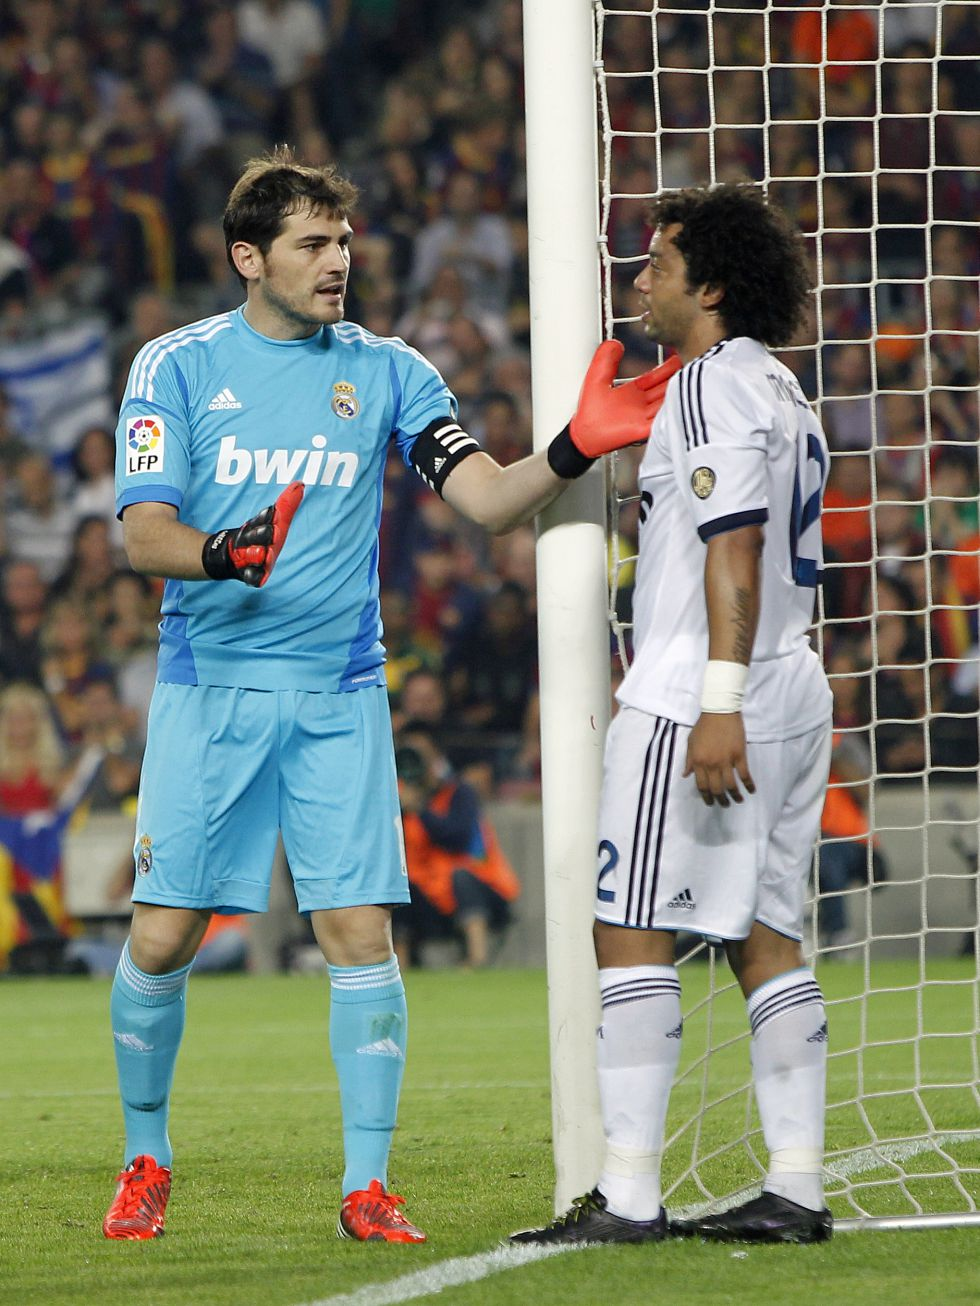 Con Casillas y Marcelo